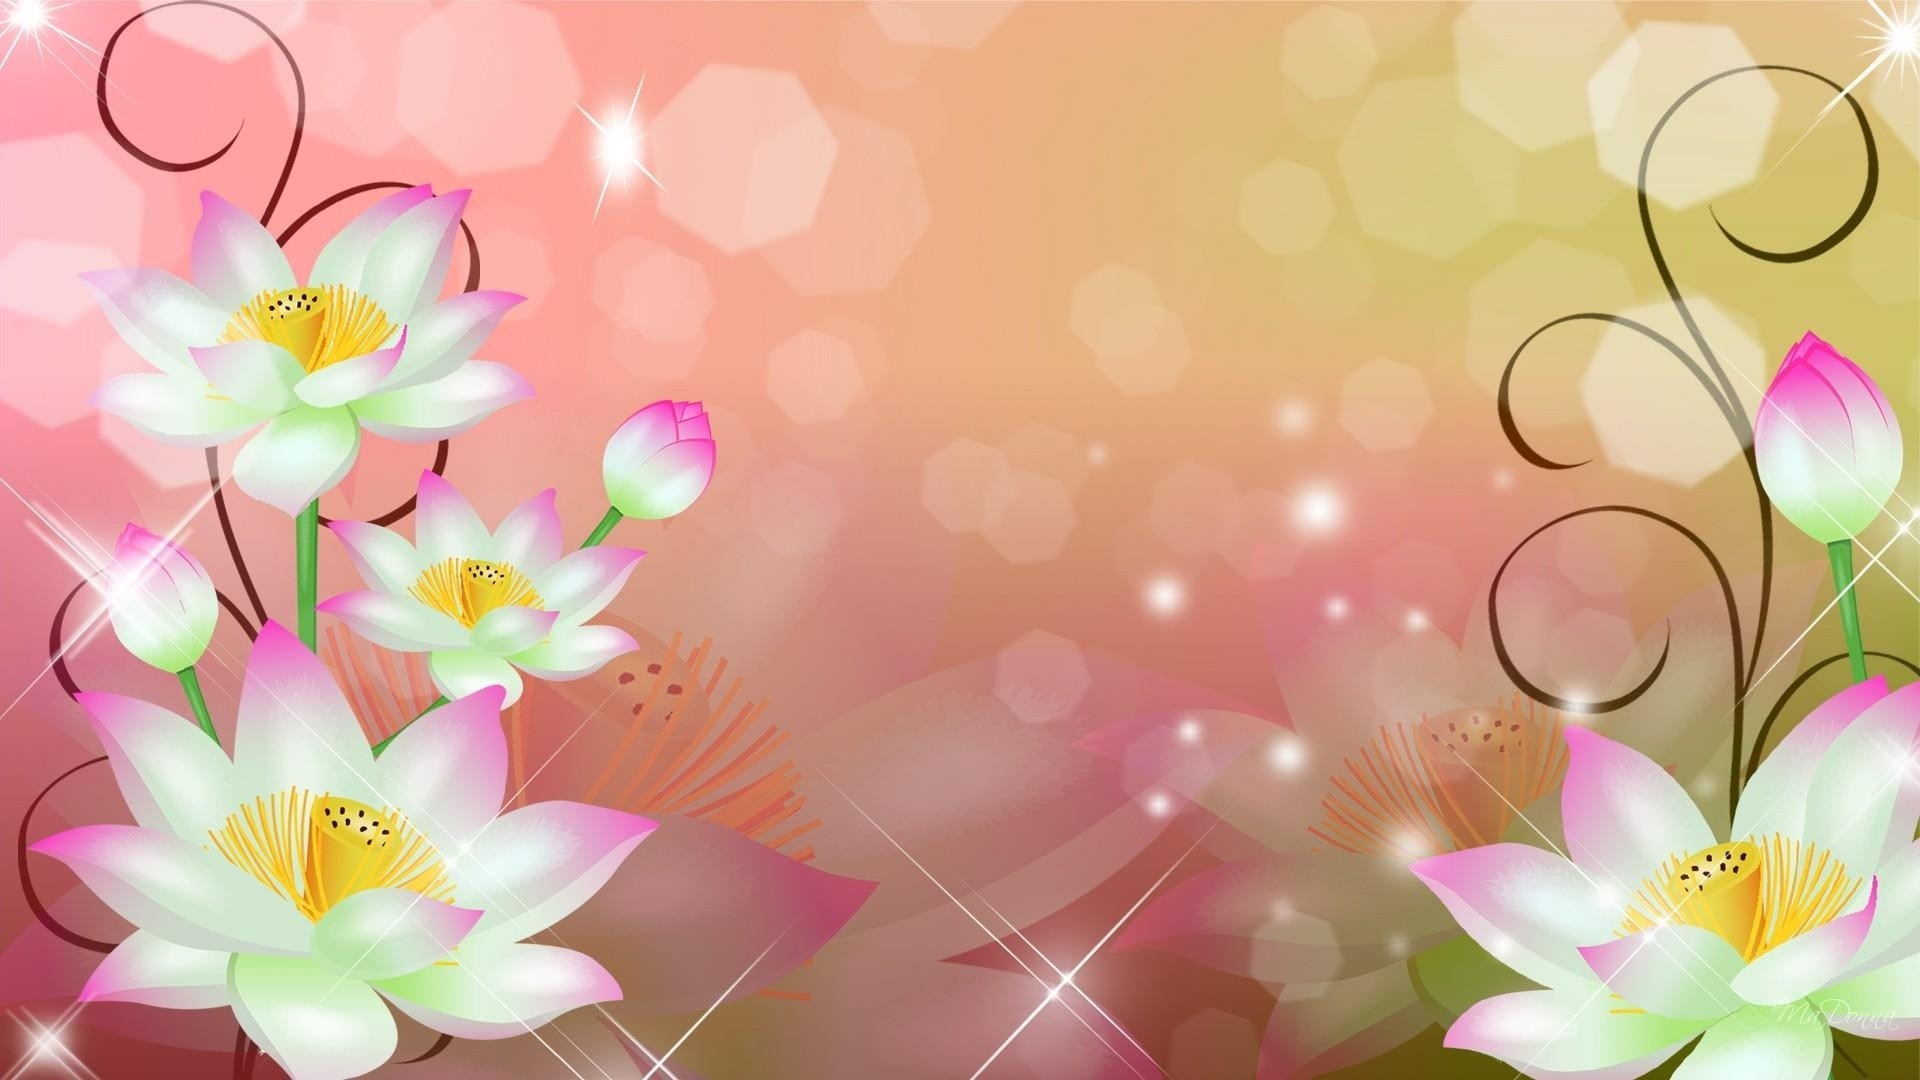 Res: 1920x1080, Background Flower Pictures - The Best Flowers Ideas